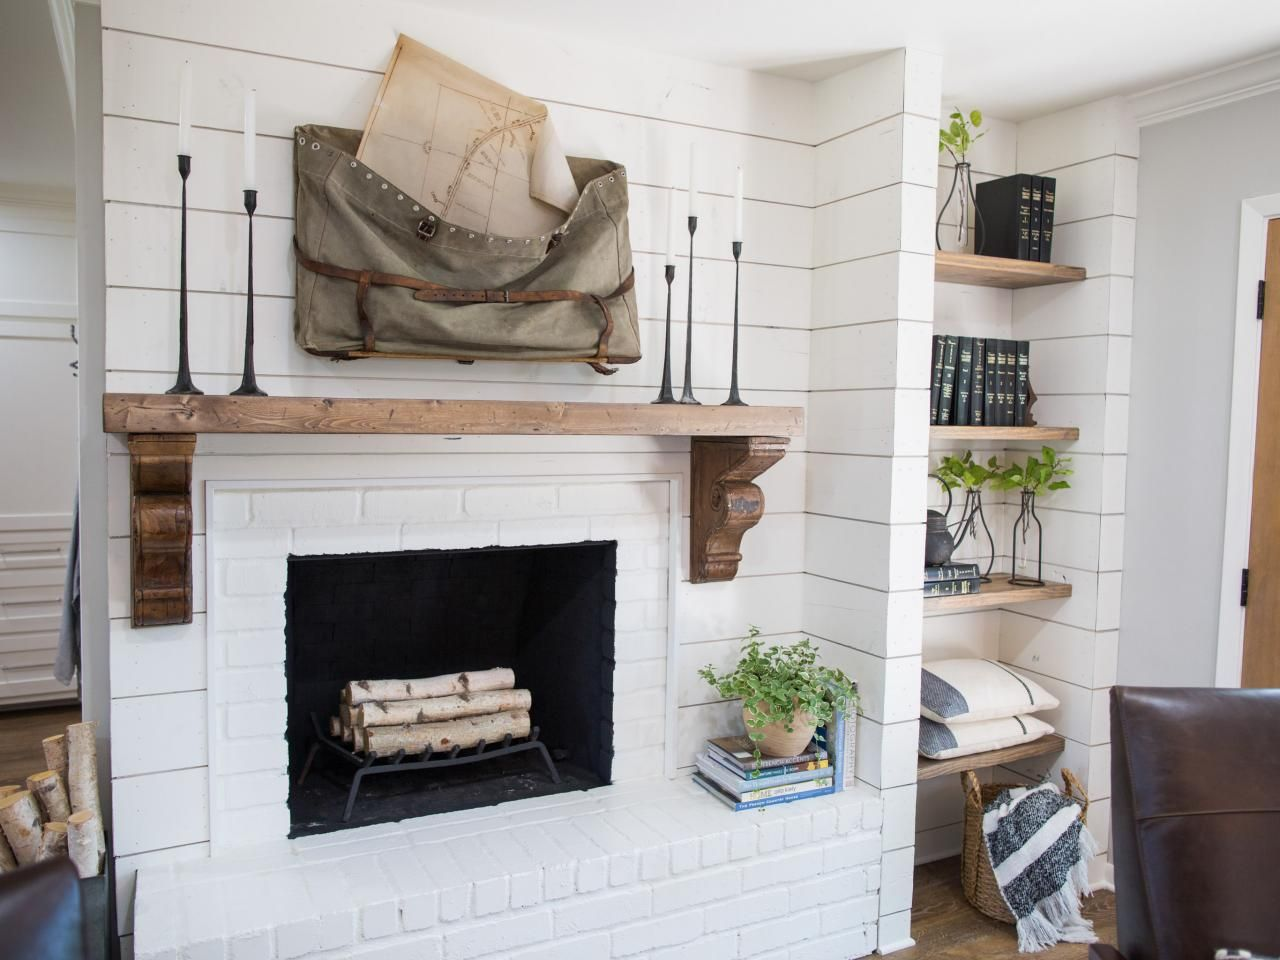 Find The Best Of Fixer Upper From HGTV Love This Mantel